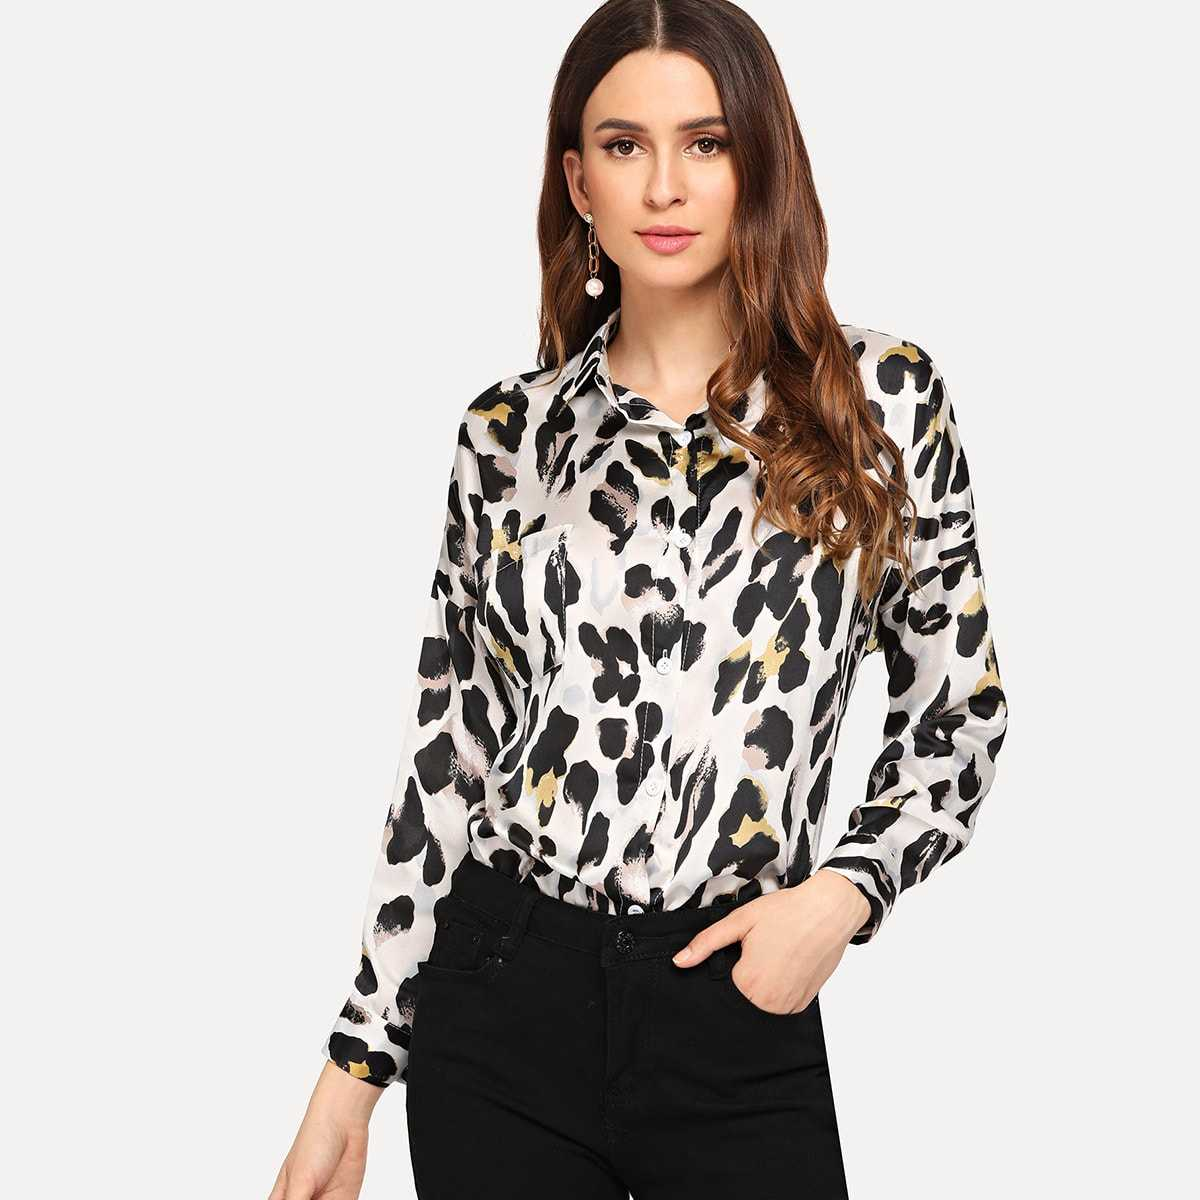 Curved Hem Leopard Blouse in Multicolor by ROMWE on GOOFASH